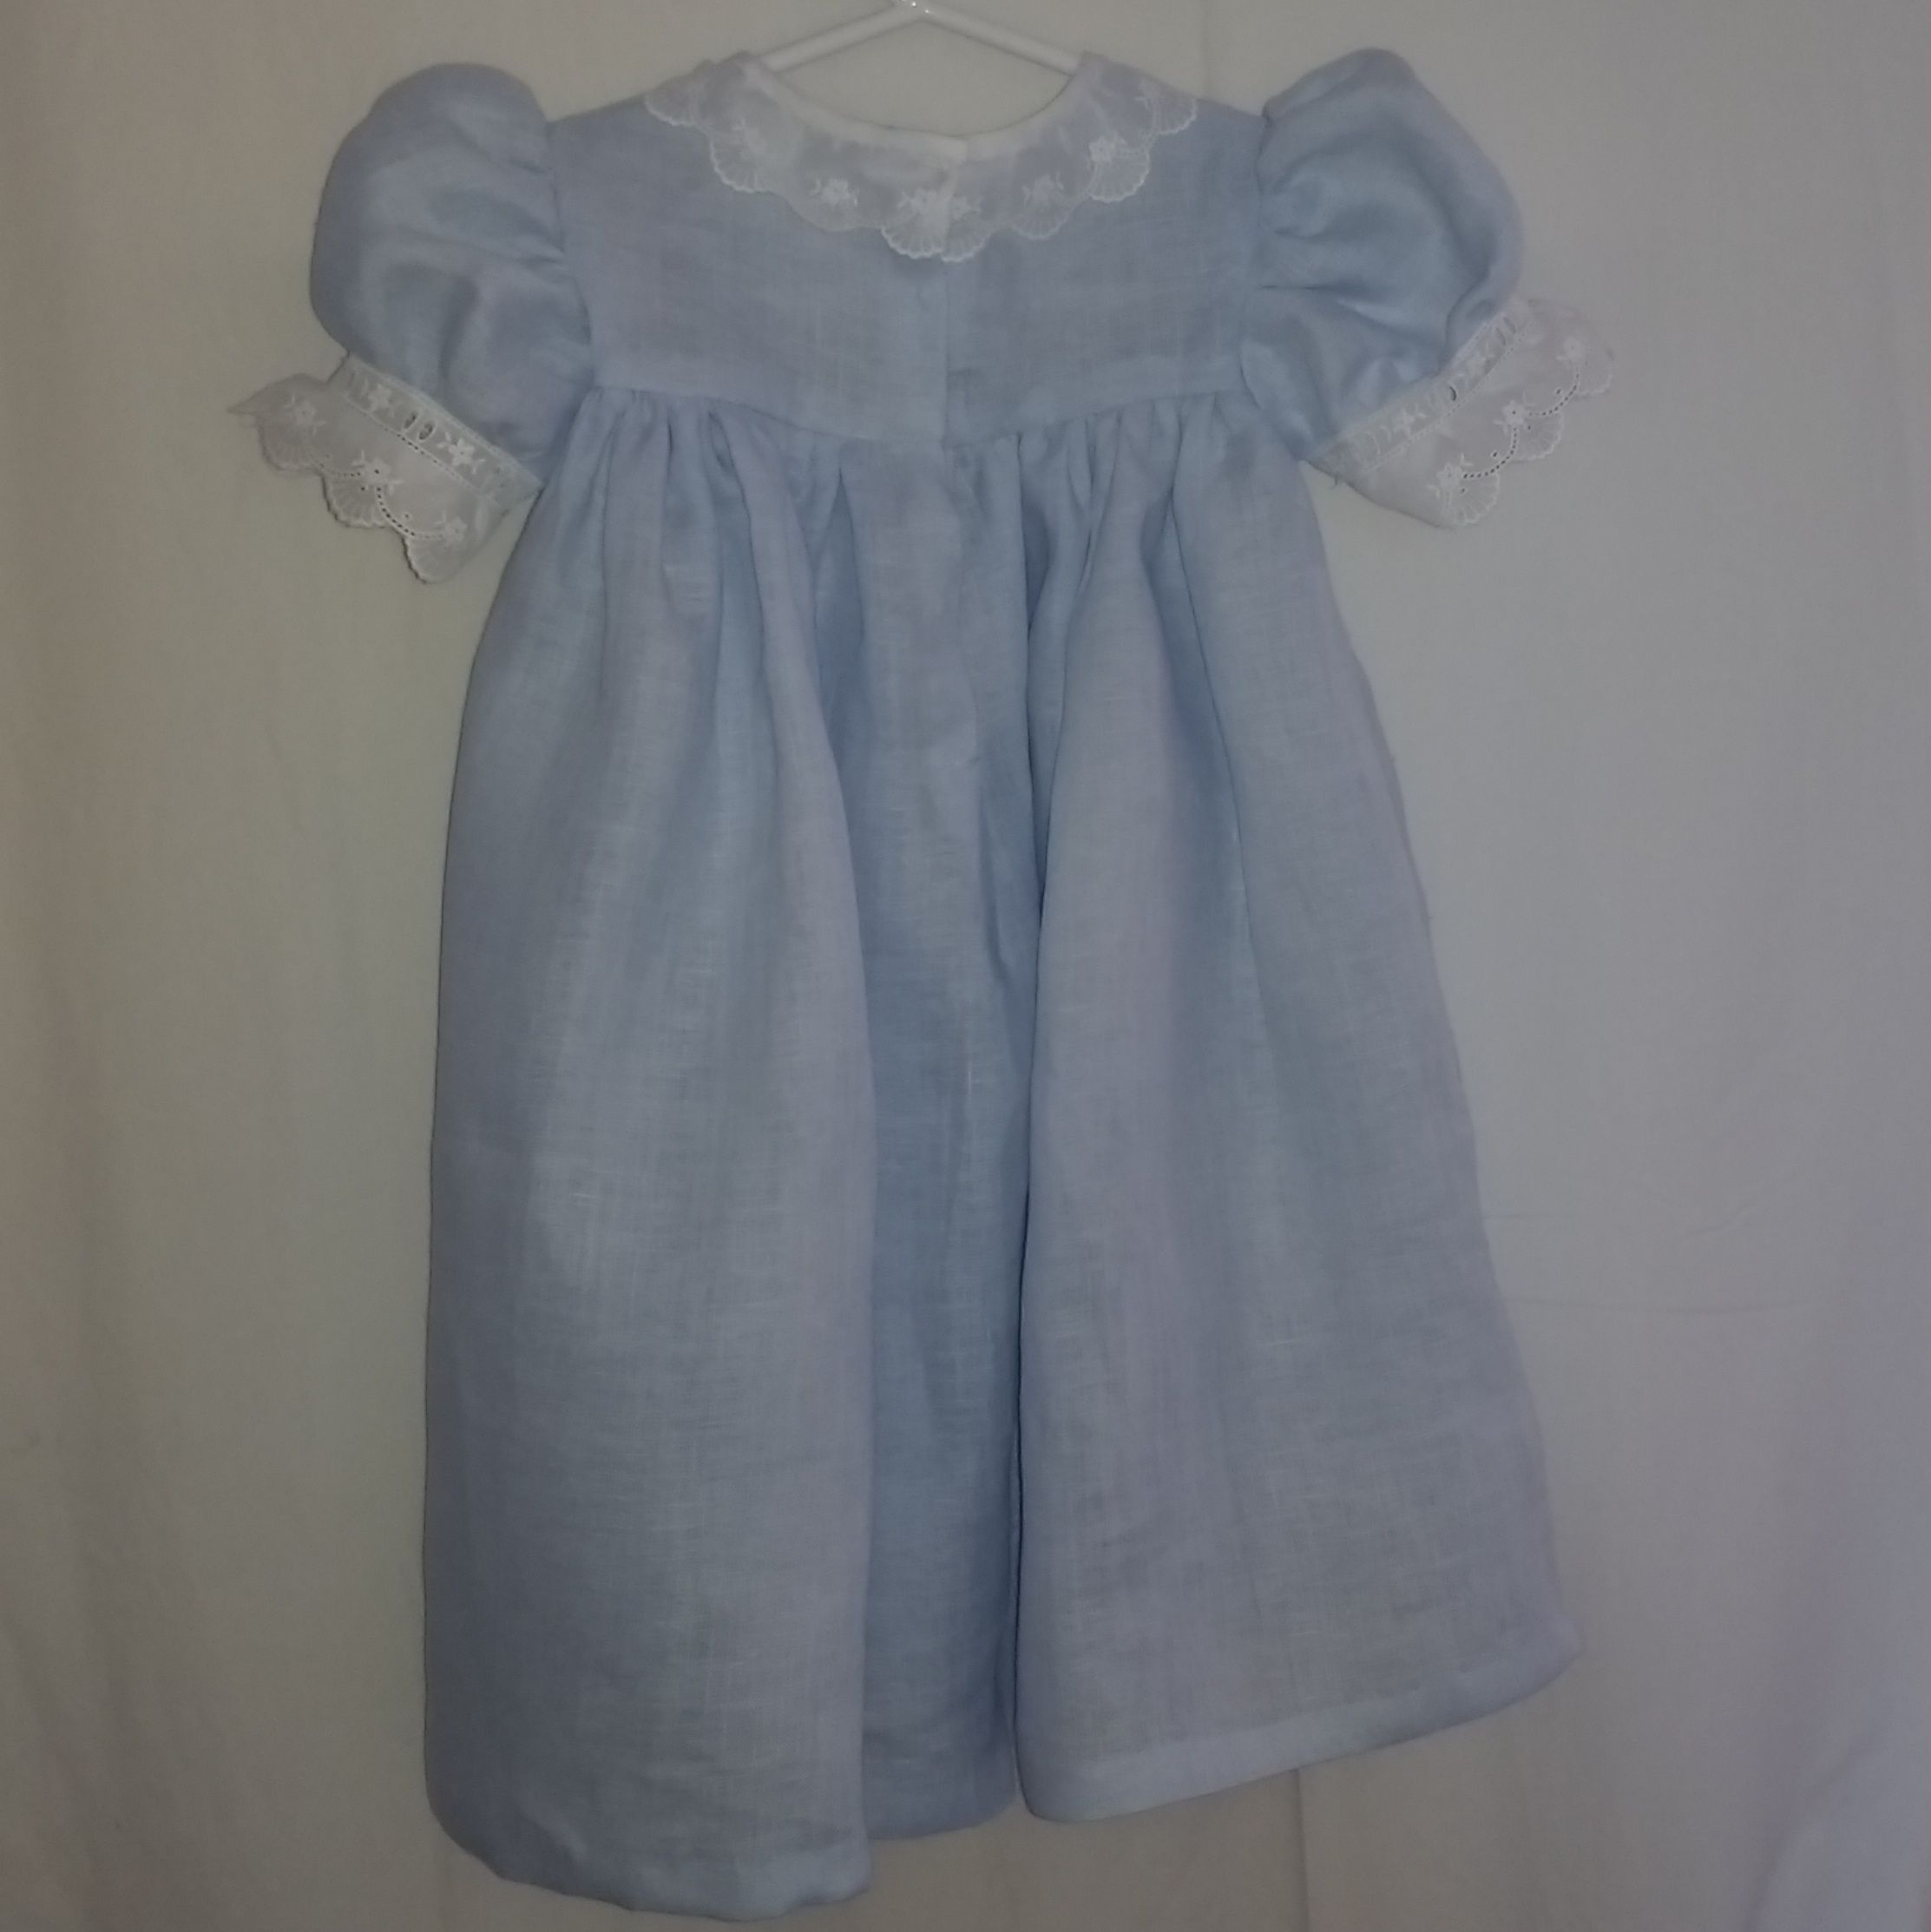 Blue Linen dress w/ white  entredeux, beading fabric (for ribbon insertion, ribbon not included) scalloped collar, puffed sleeves, hand: stitching border, tacking snaps and hem.